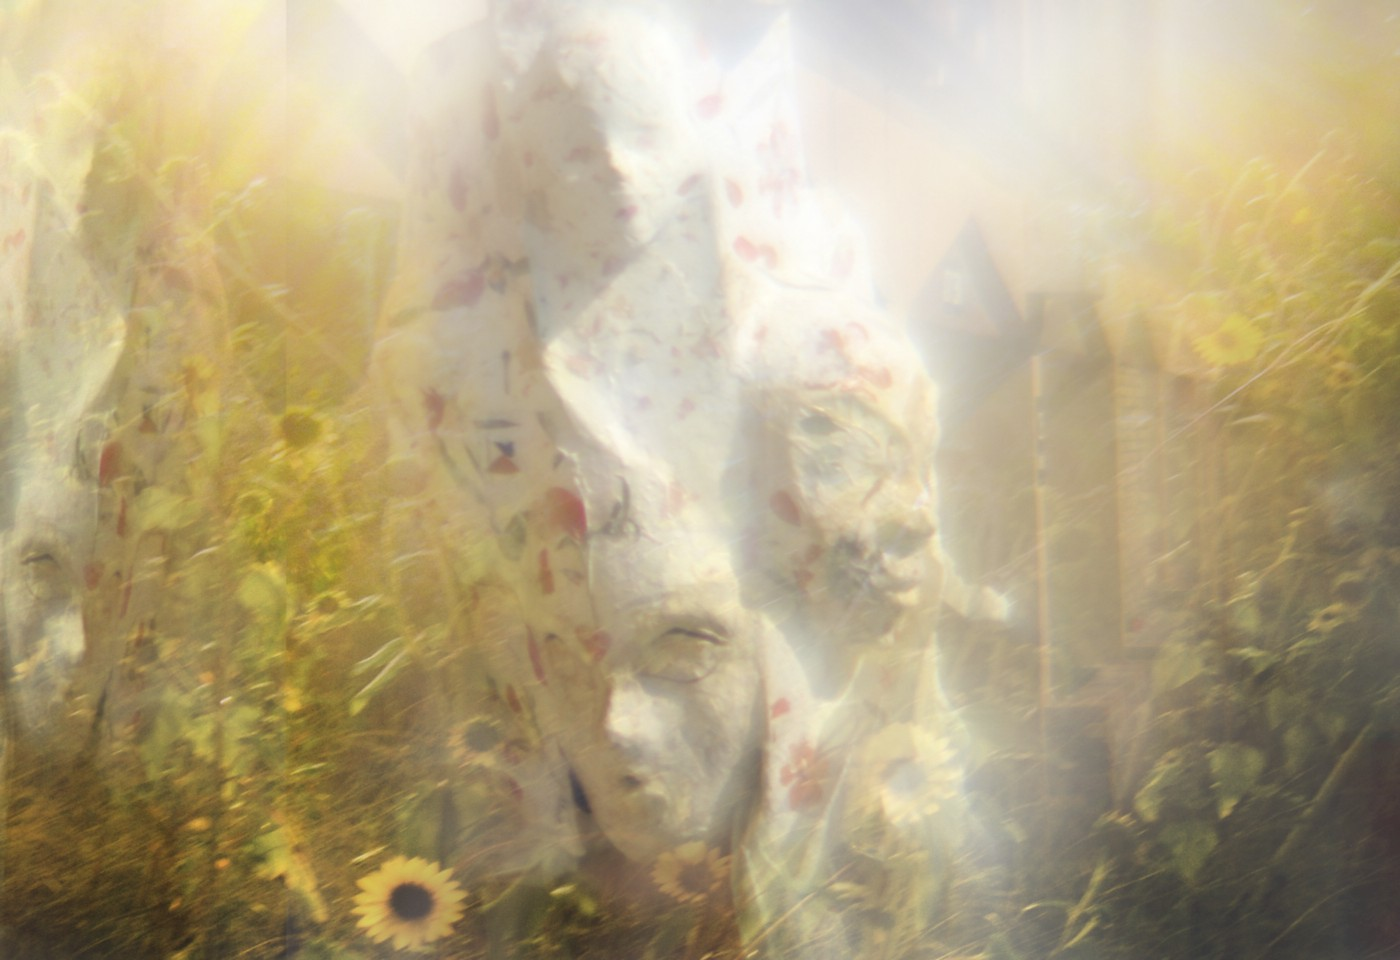 Mixed media image combining a photo of yellow flowers in a field and a photo of a multi-faced mask.